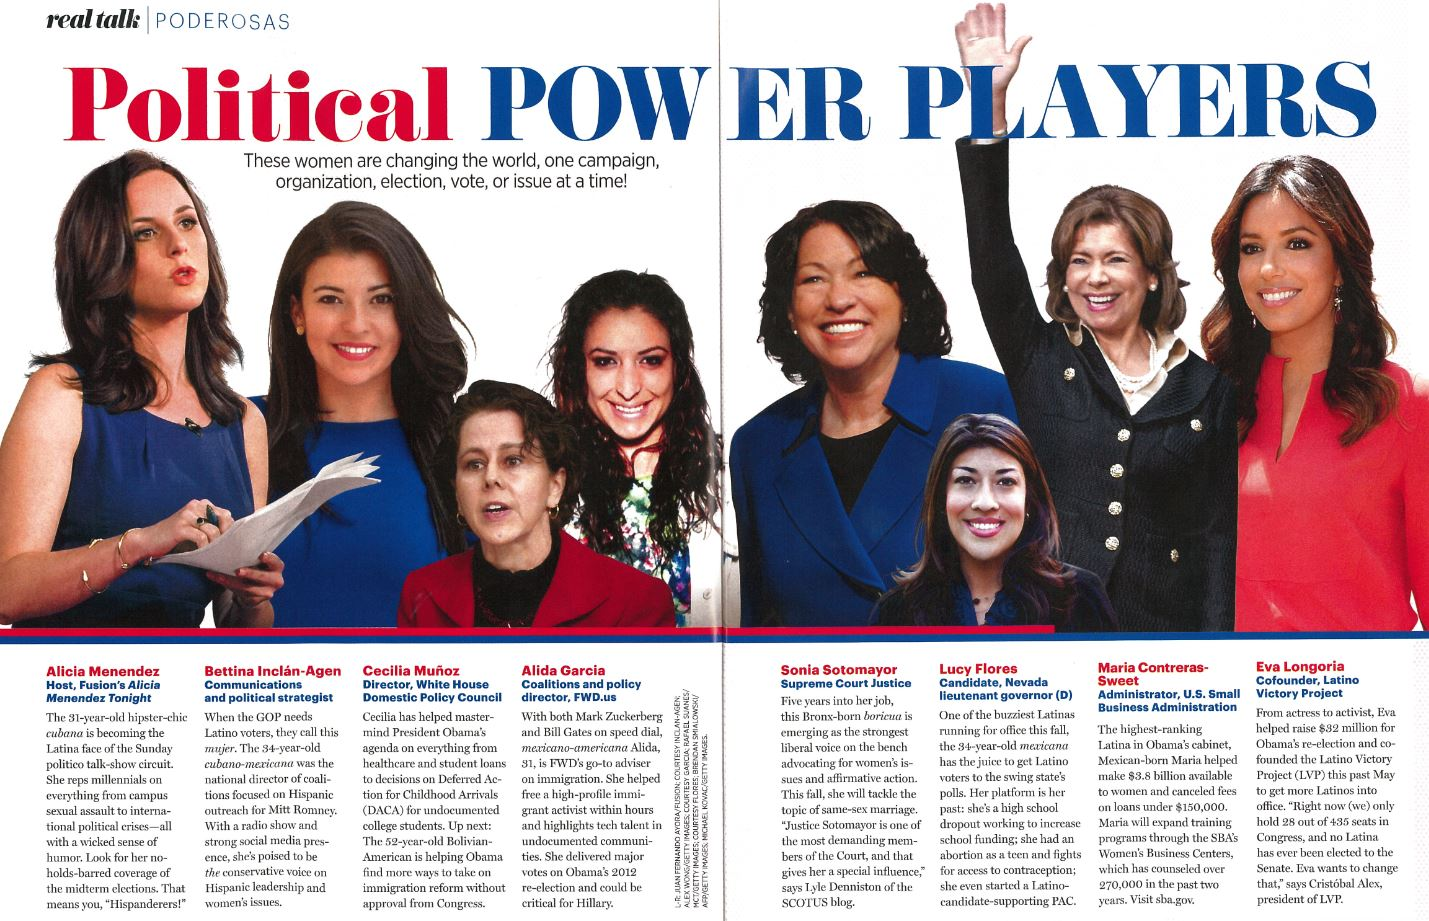 Cosmo for Latinas Political Power Players